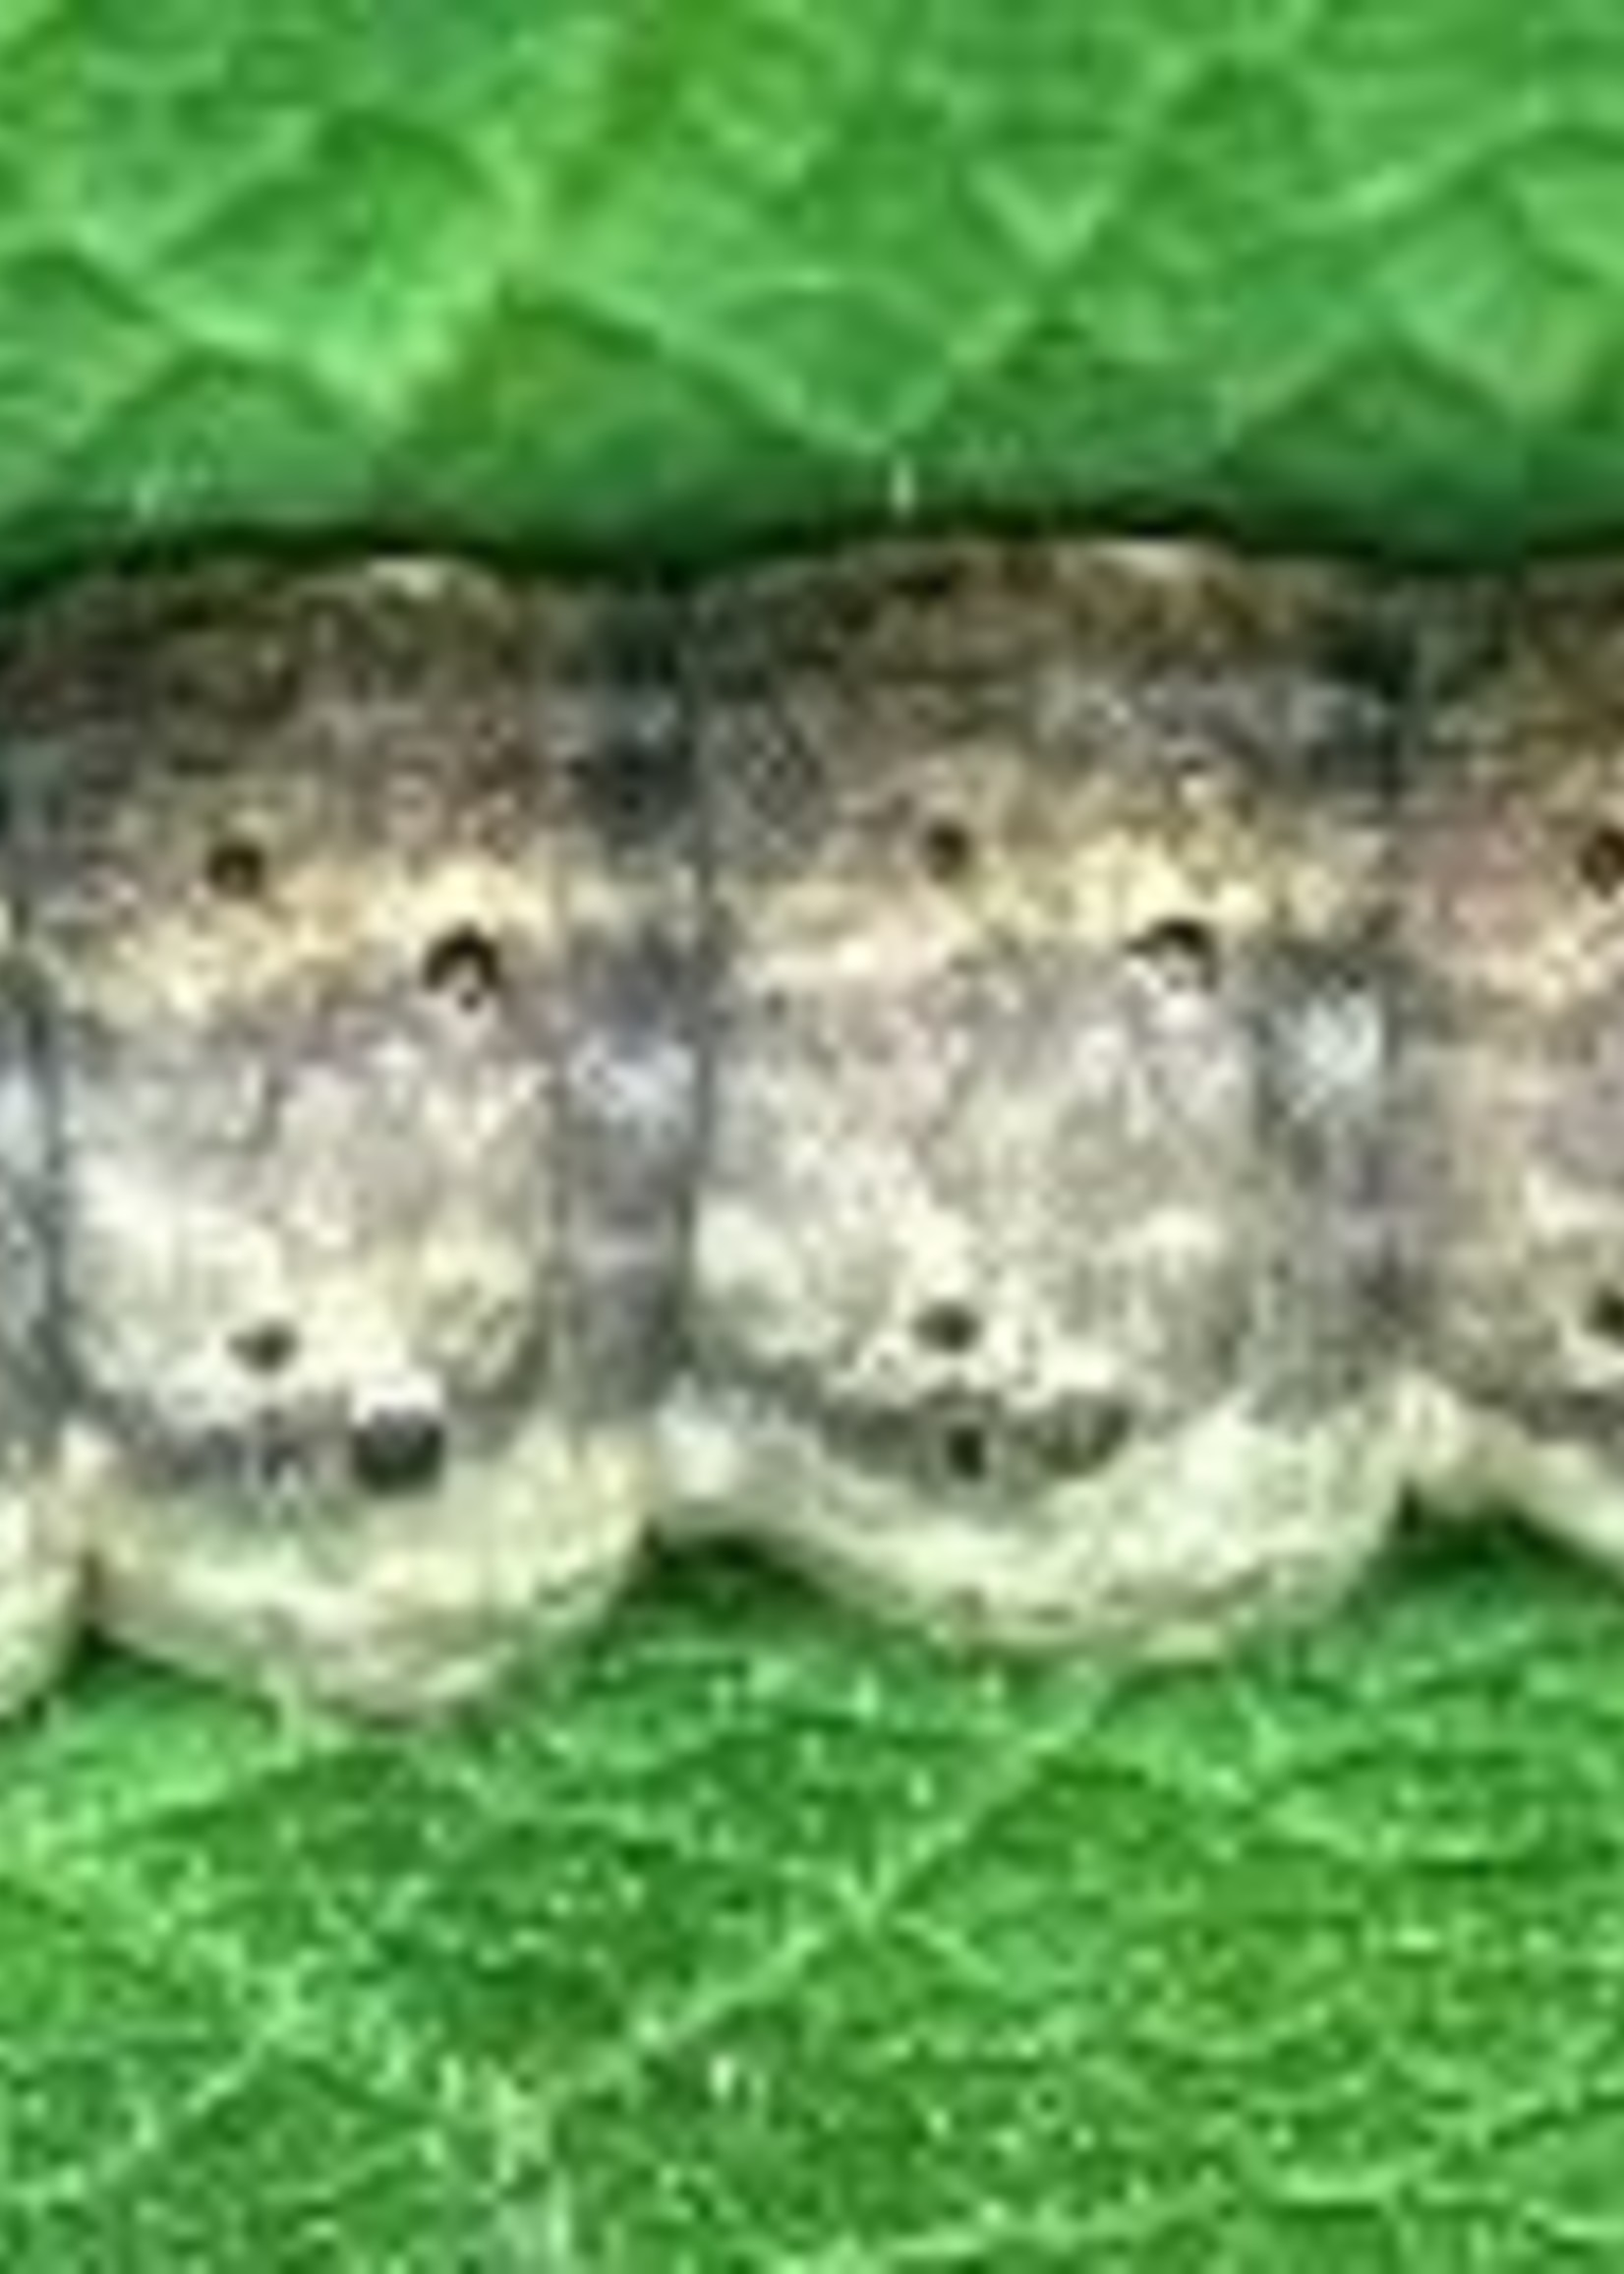 Insect, Cutworm